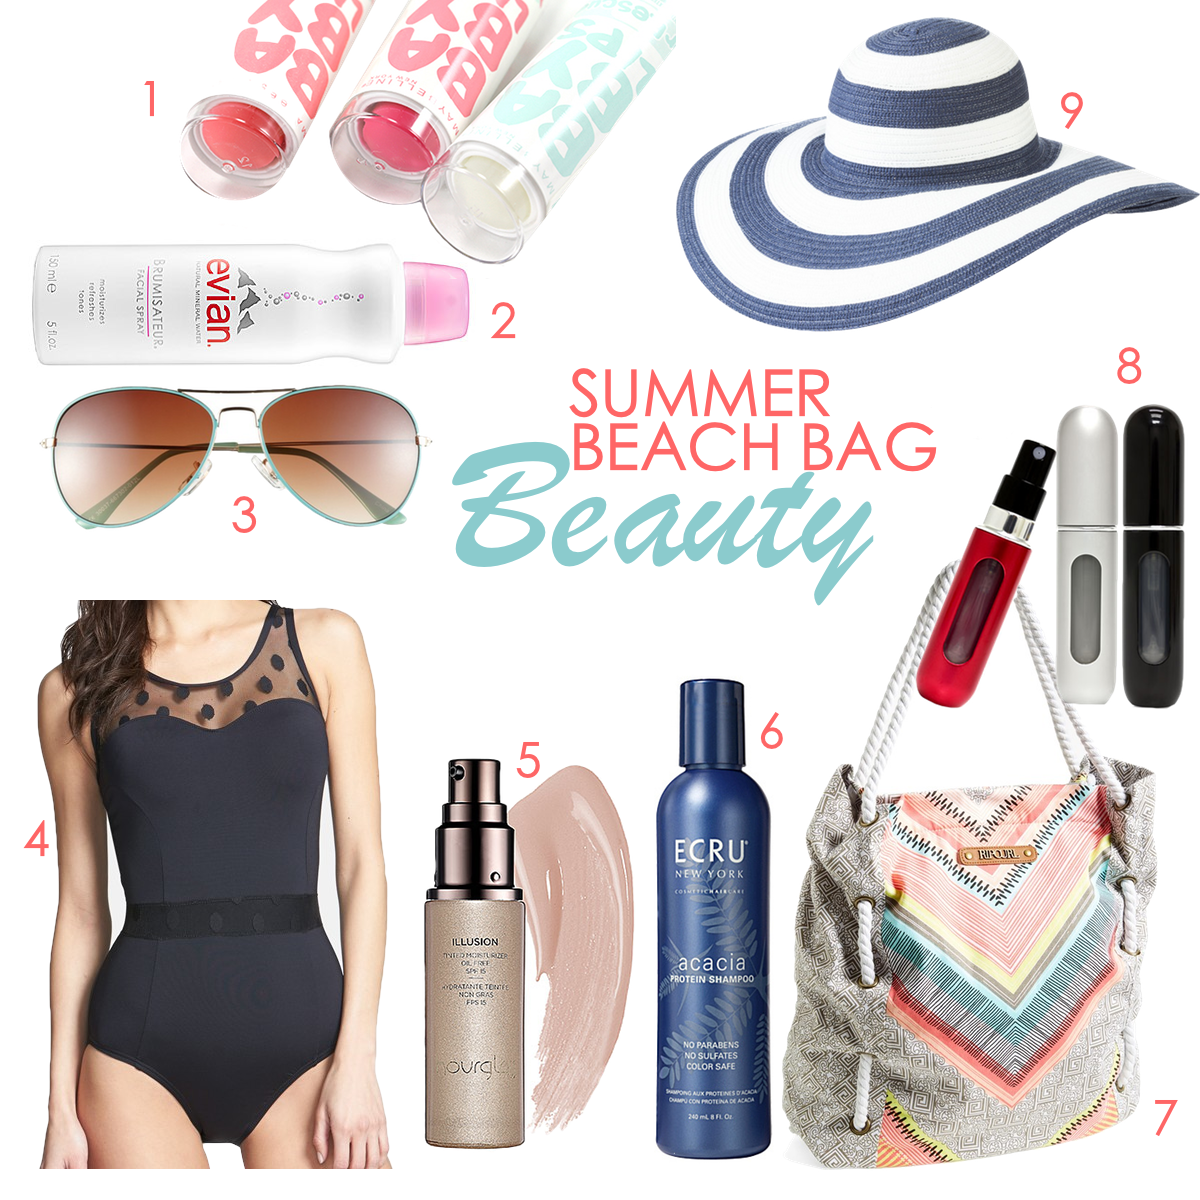 Pack your beach tote with these essentials